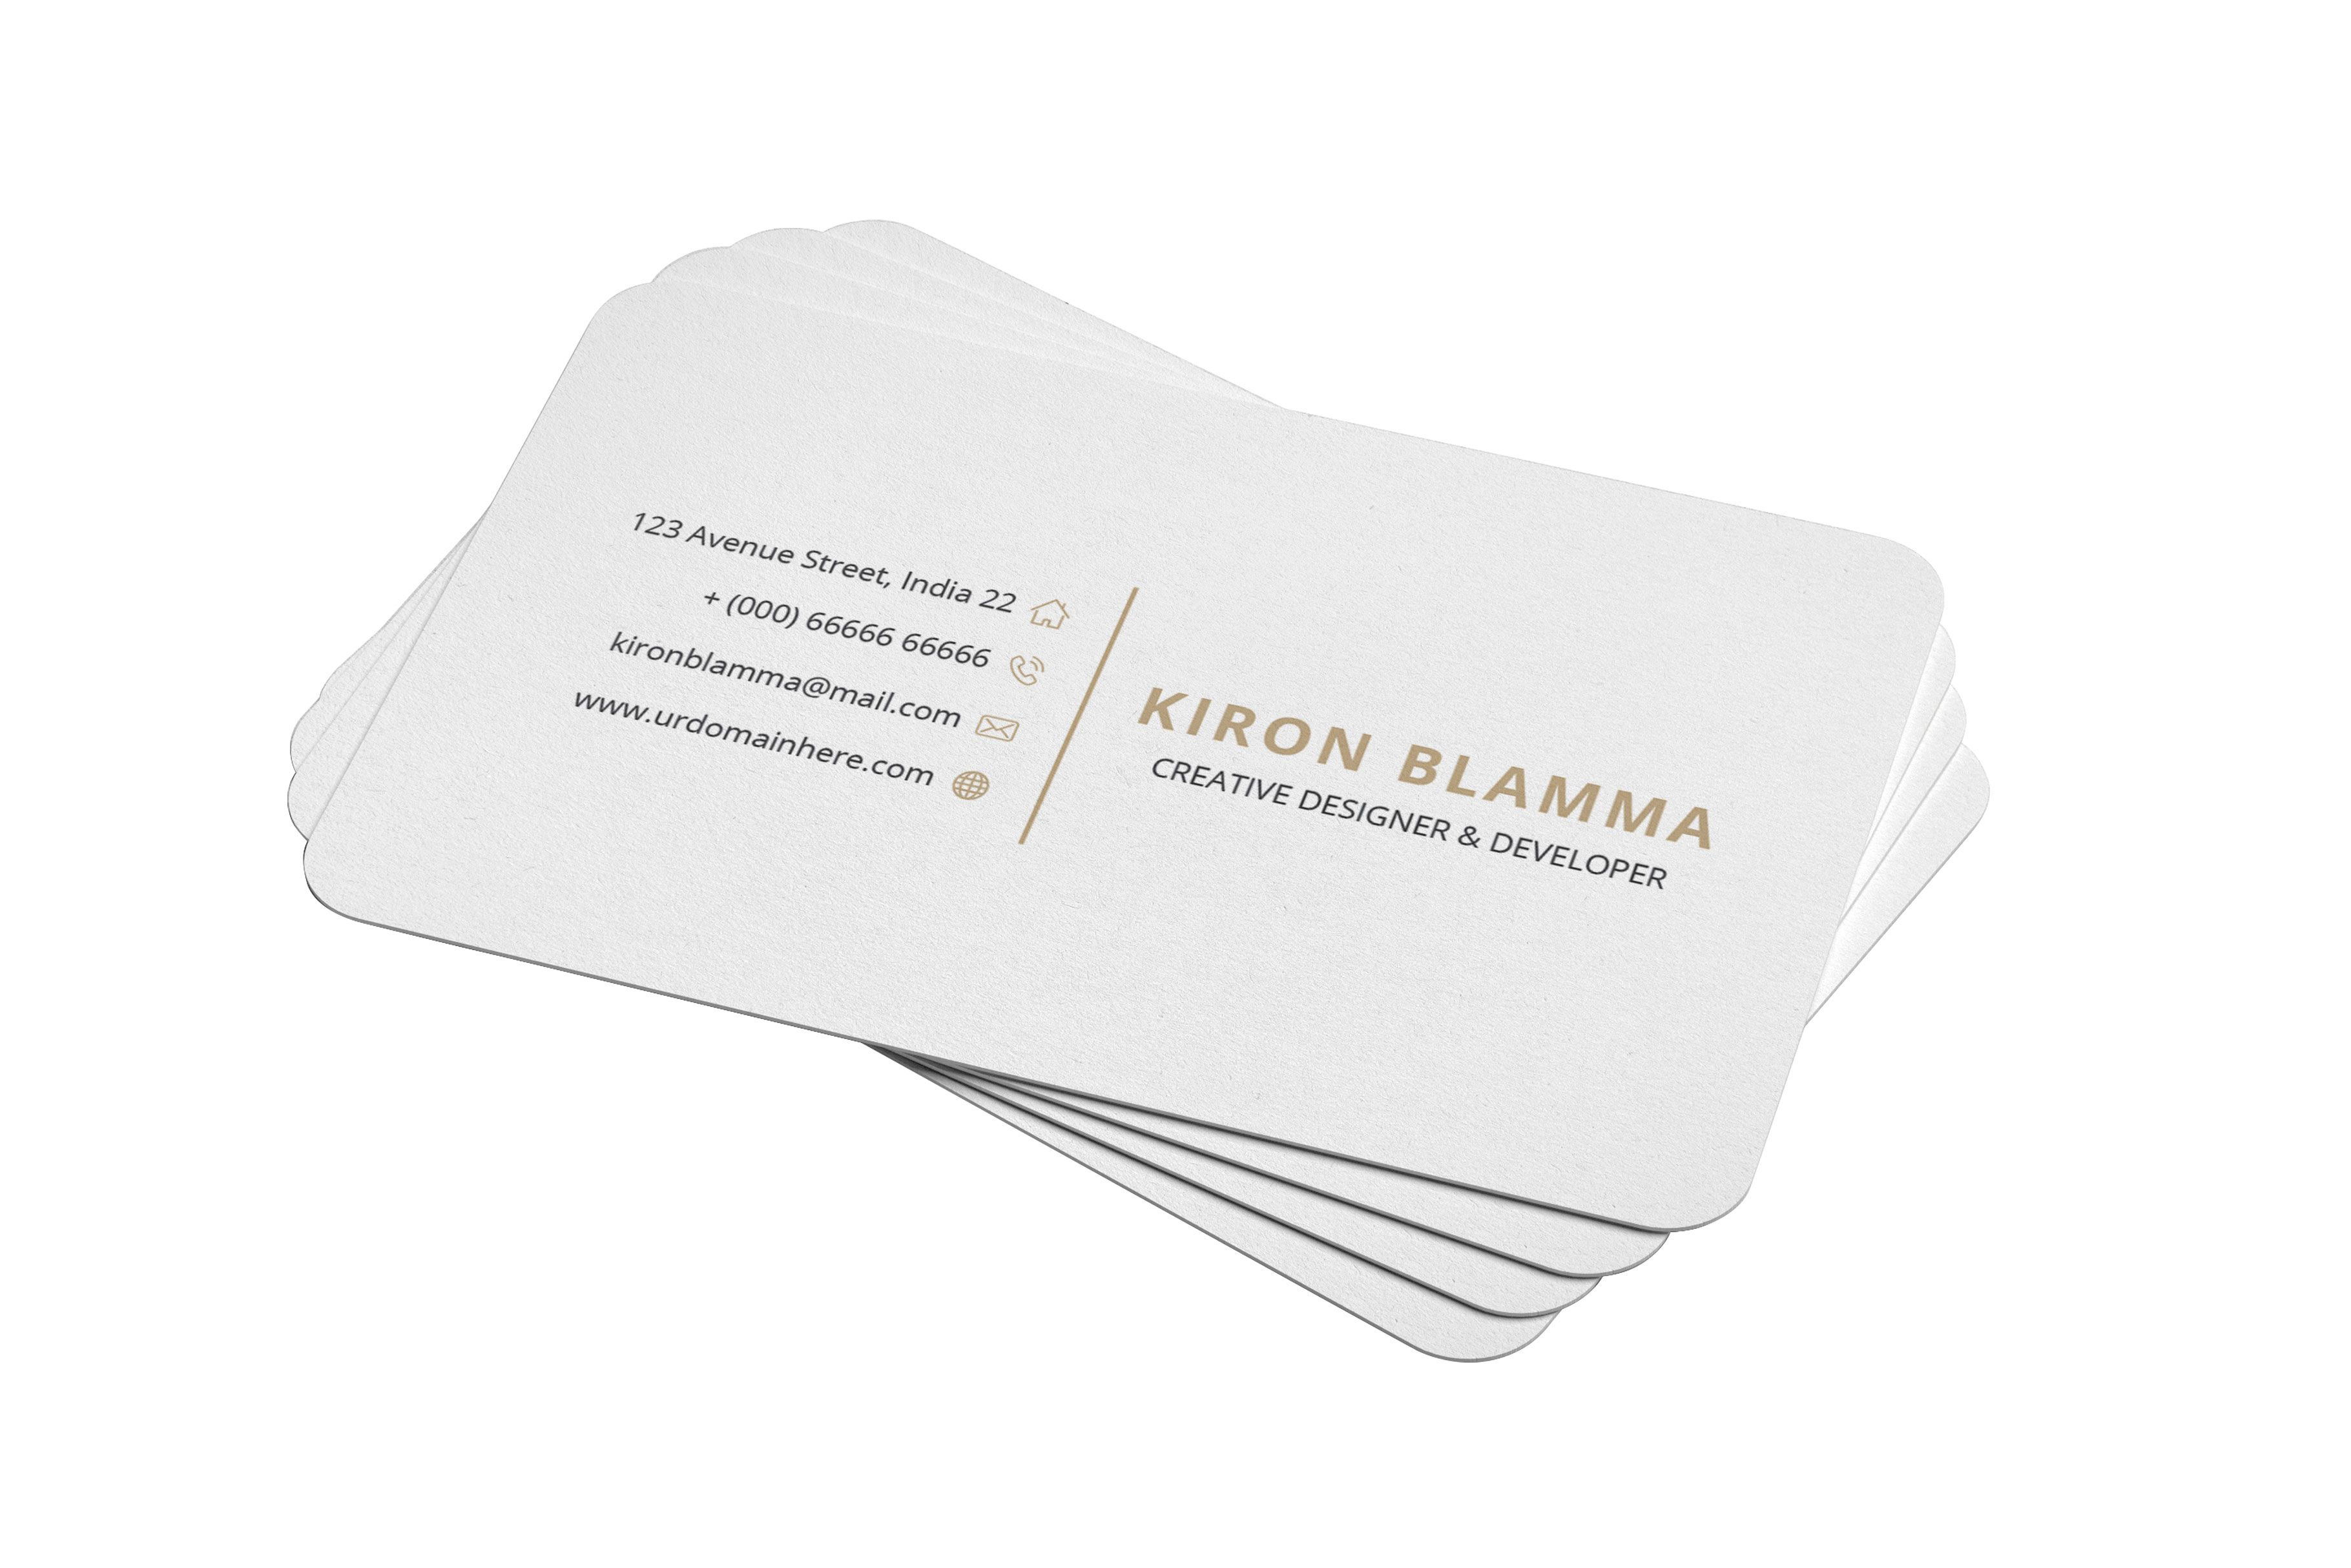 White Classic Business Cards Graphic Templates Classic Business Card Business Card Graphic Business Card Design Creative